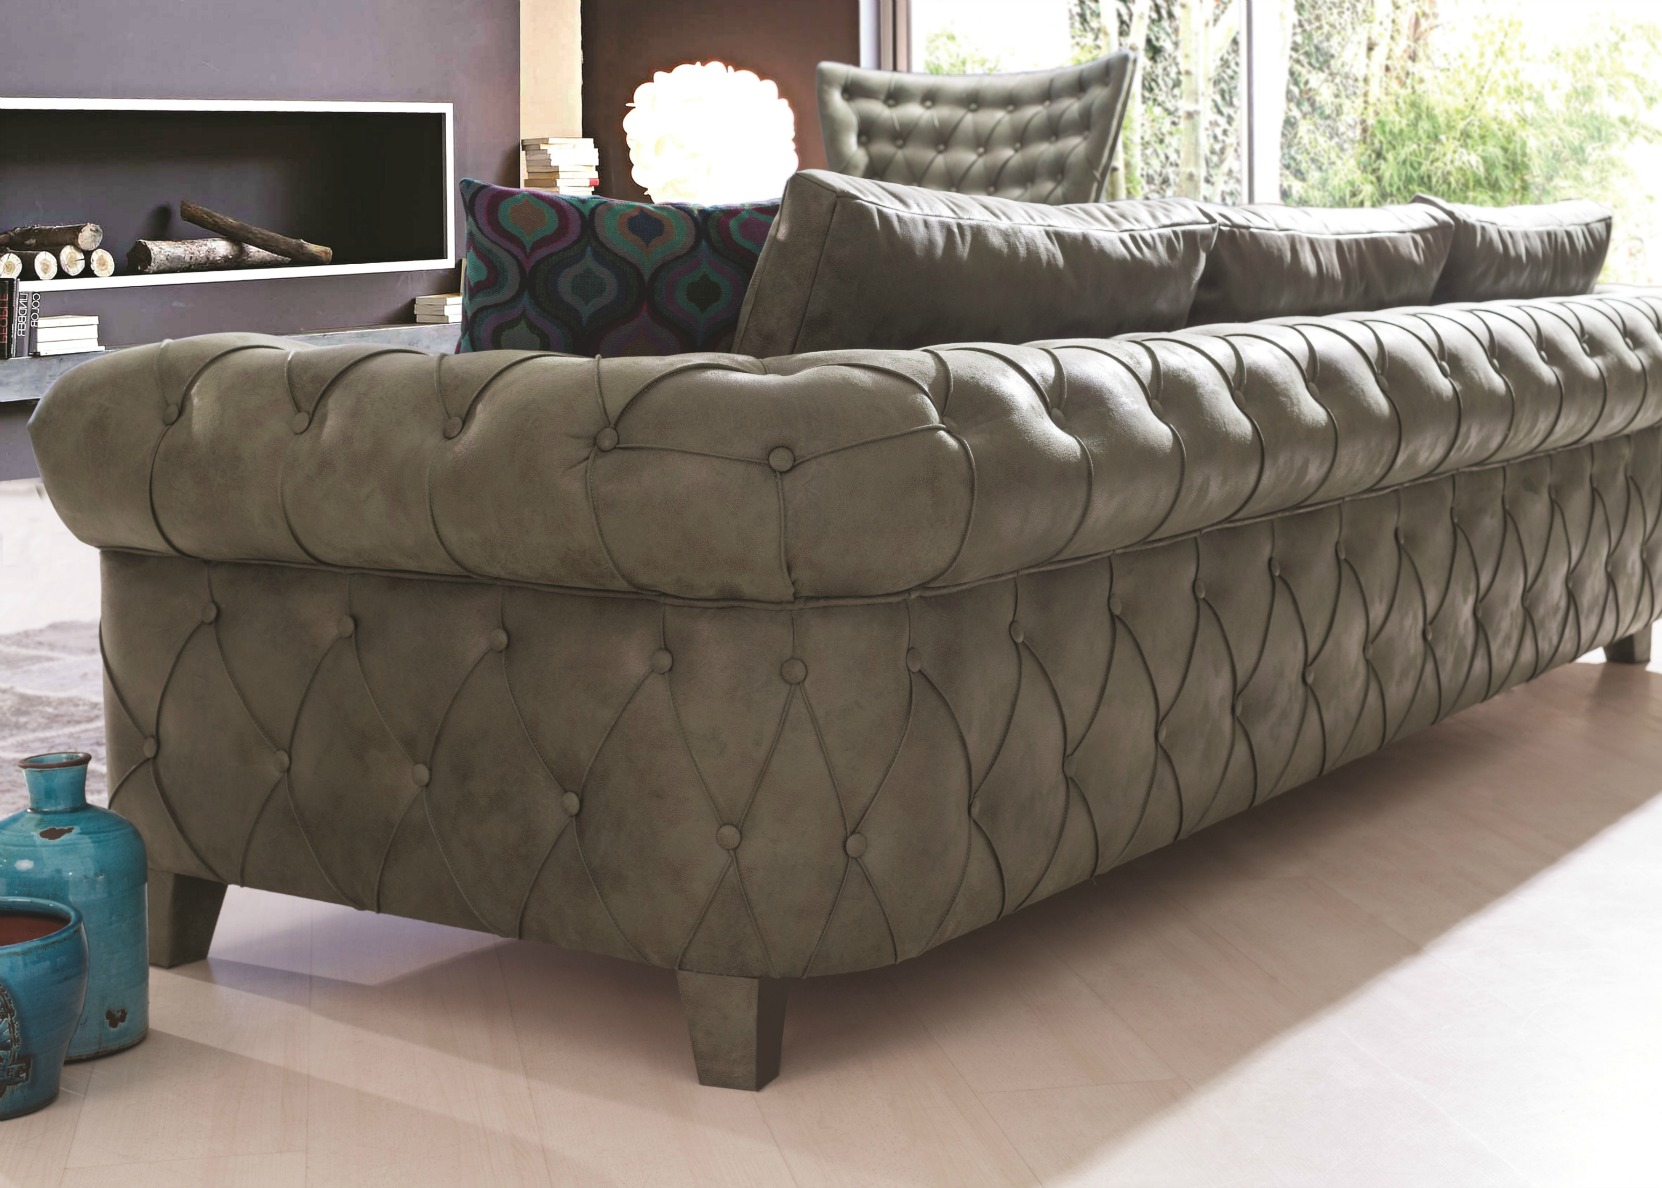 Gold Chesterfield Sofa In Green Art Leather Not Just Brown